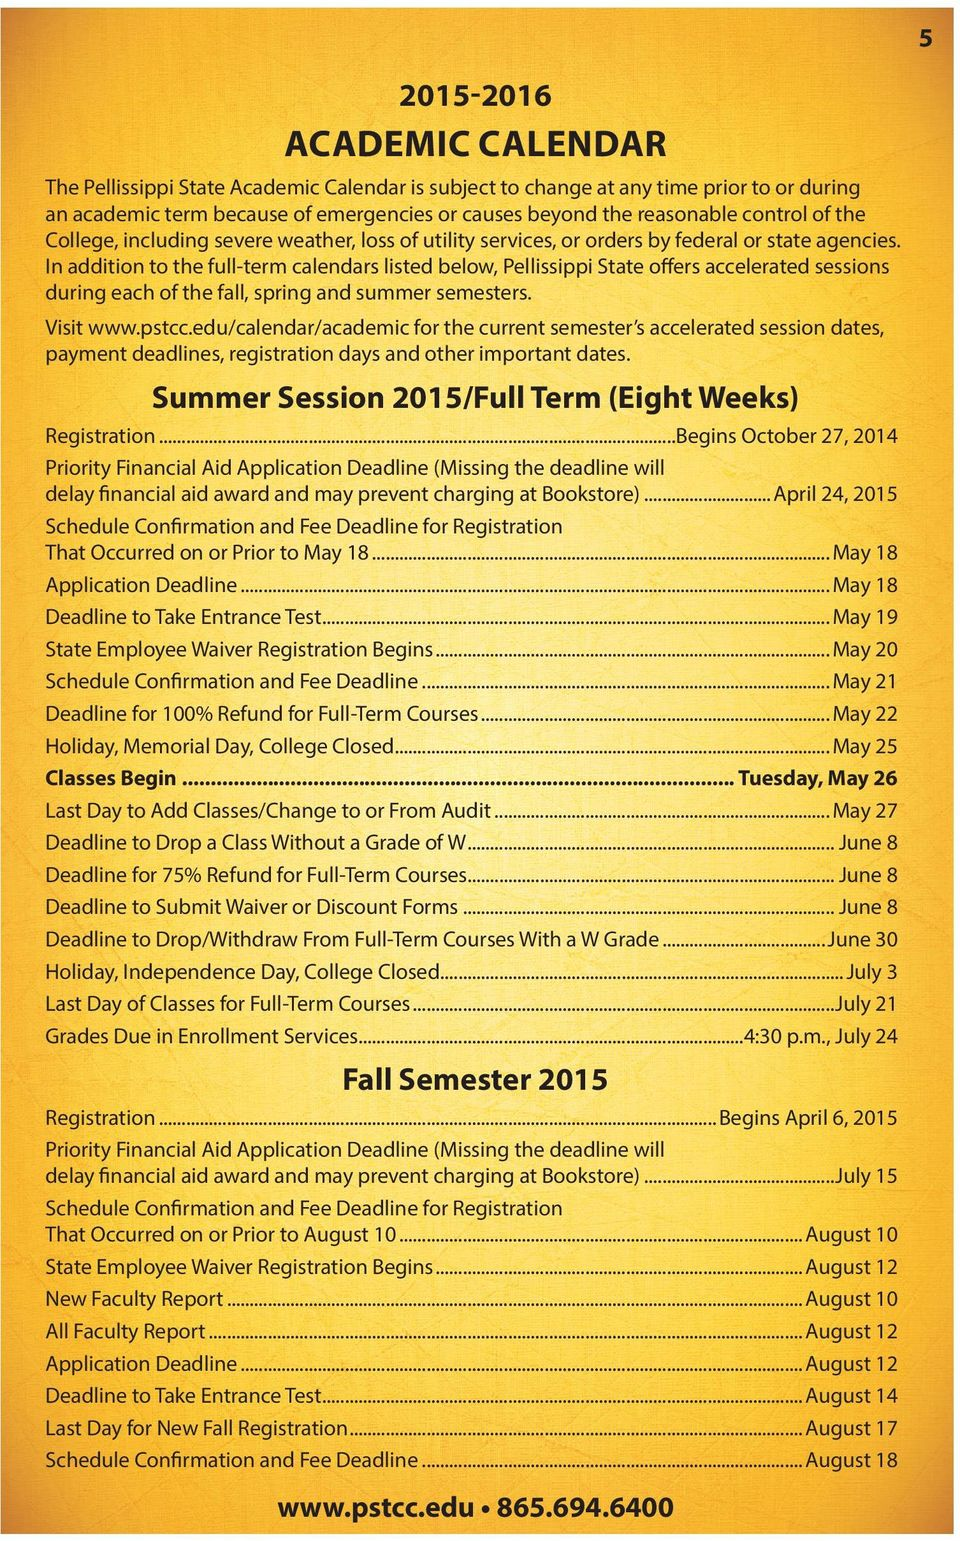 In addition to the full-term calendars listed below, Pellissippi State offers accelerated sessions during each of the fall, spring and summer semesters. Visit www.pstcc.